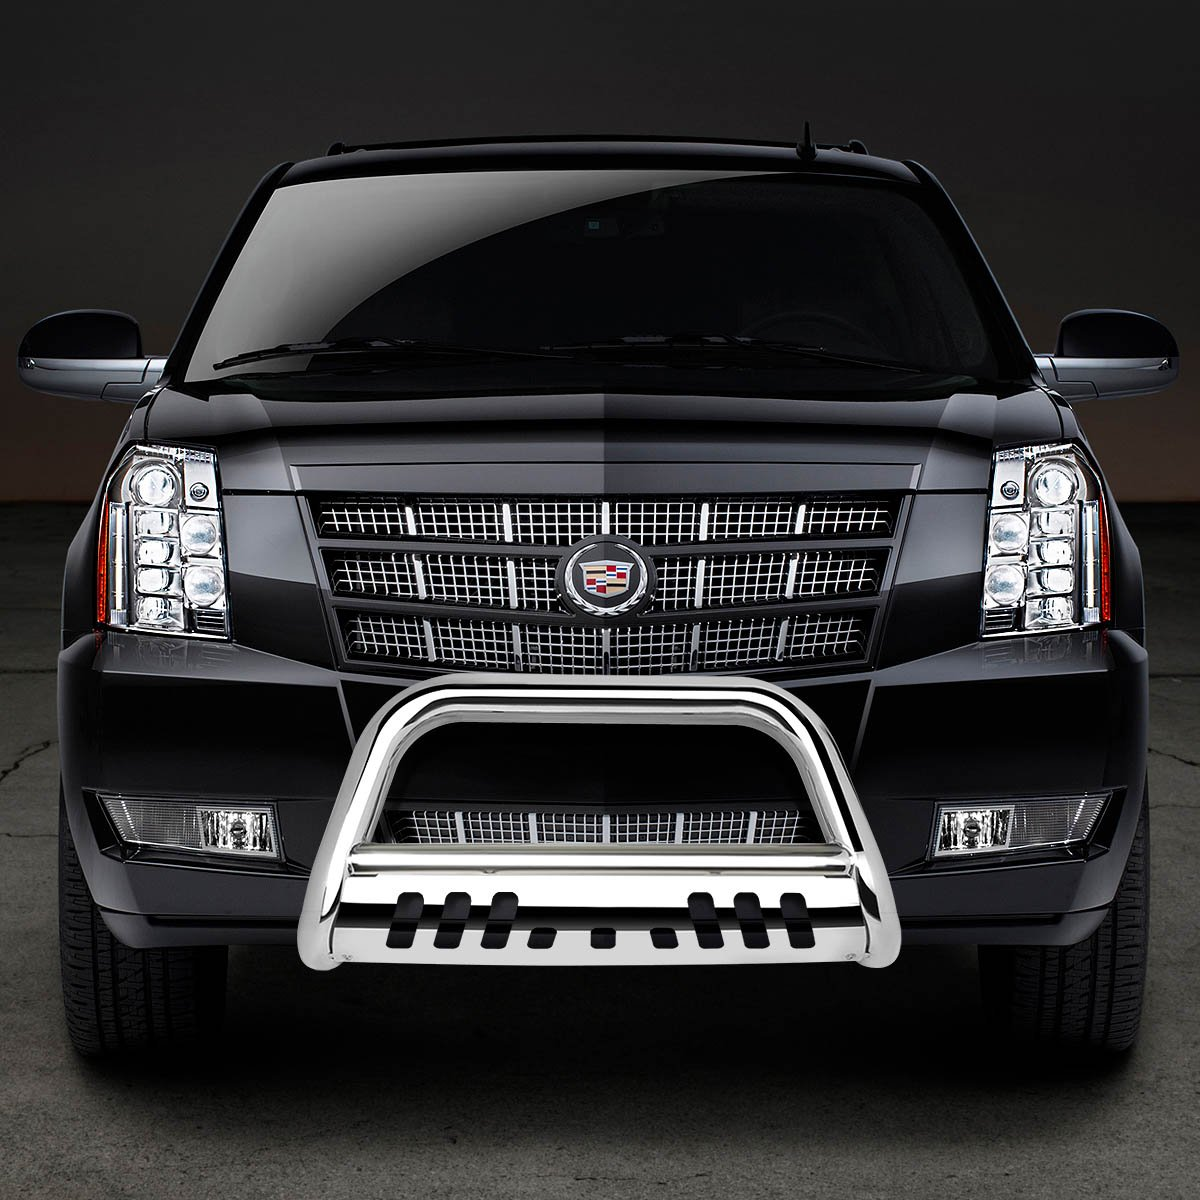 For Chevy Suburban//Tahoe//Escalade GMT900 3 Bumper Push Bull Bar+Removable Skid Plate Chrome